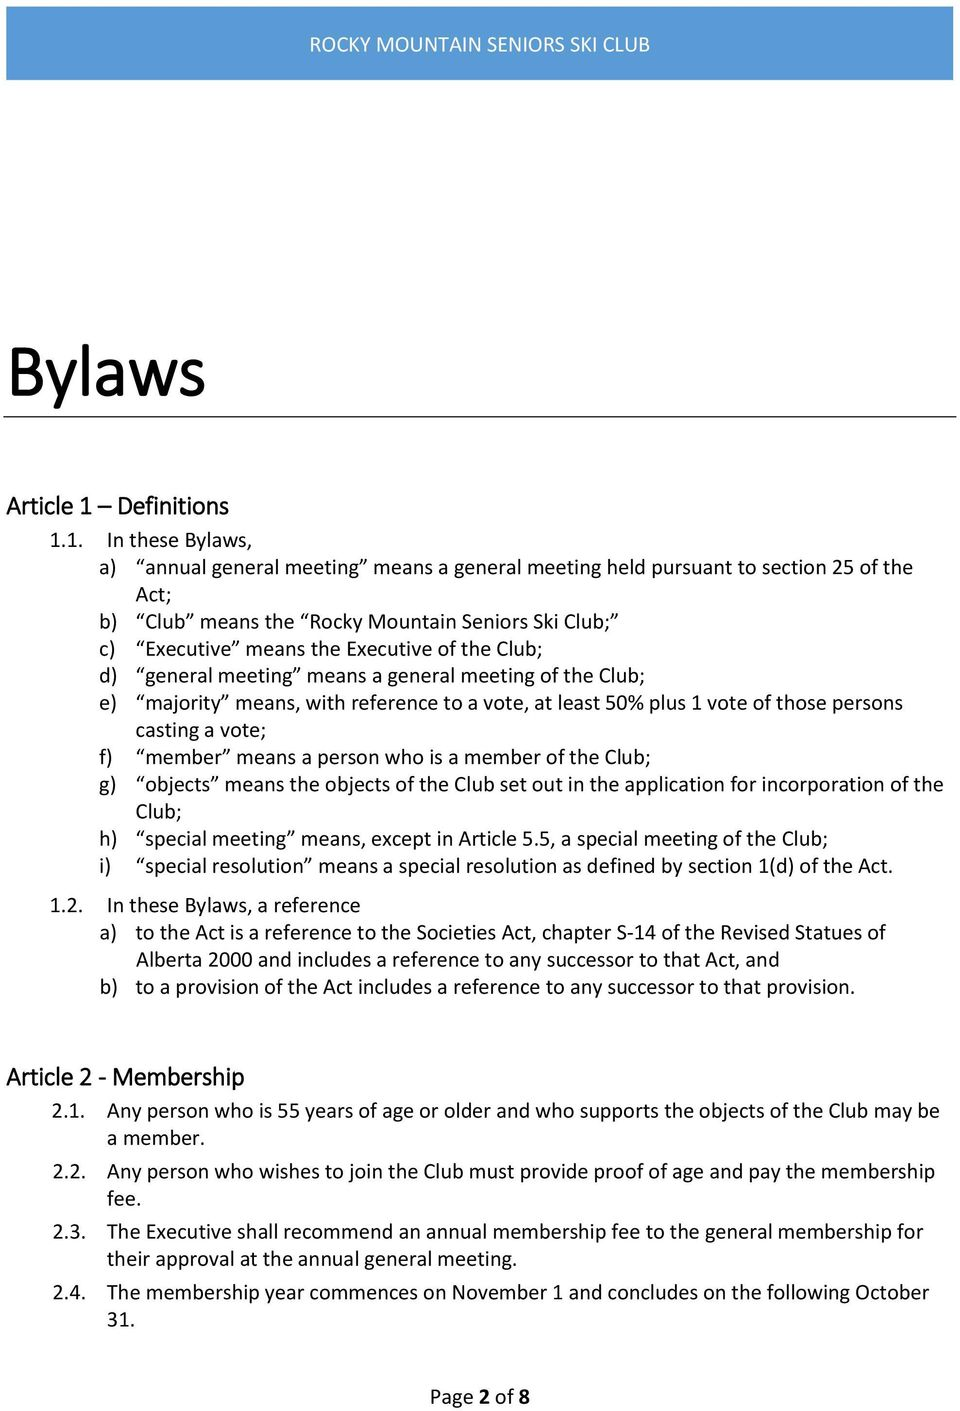 1. In these Bylaws, a) annual general meeting means a general meeting held pursuant to section 25 of the Act; b) Club means the Rocky Mountain Seniors Ski Club; c) Executive means the Executive of